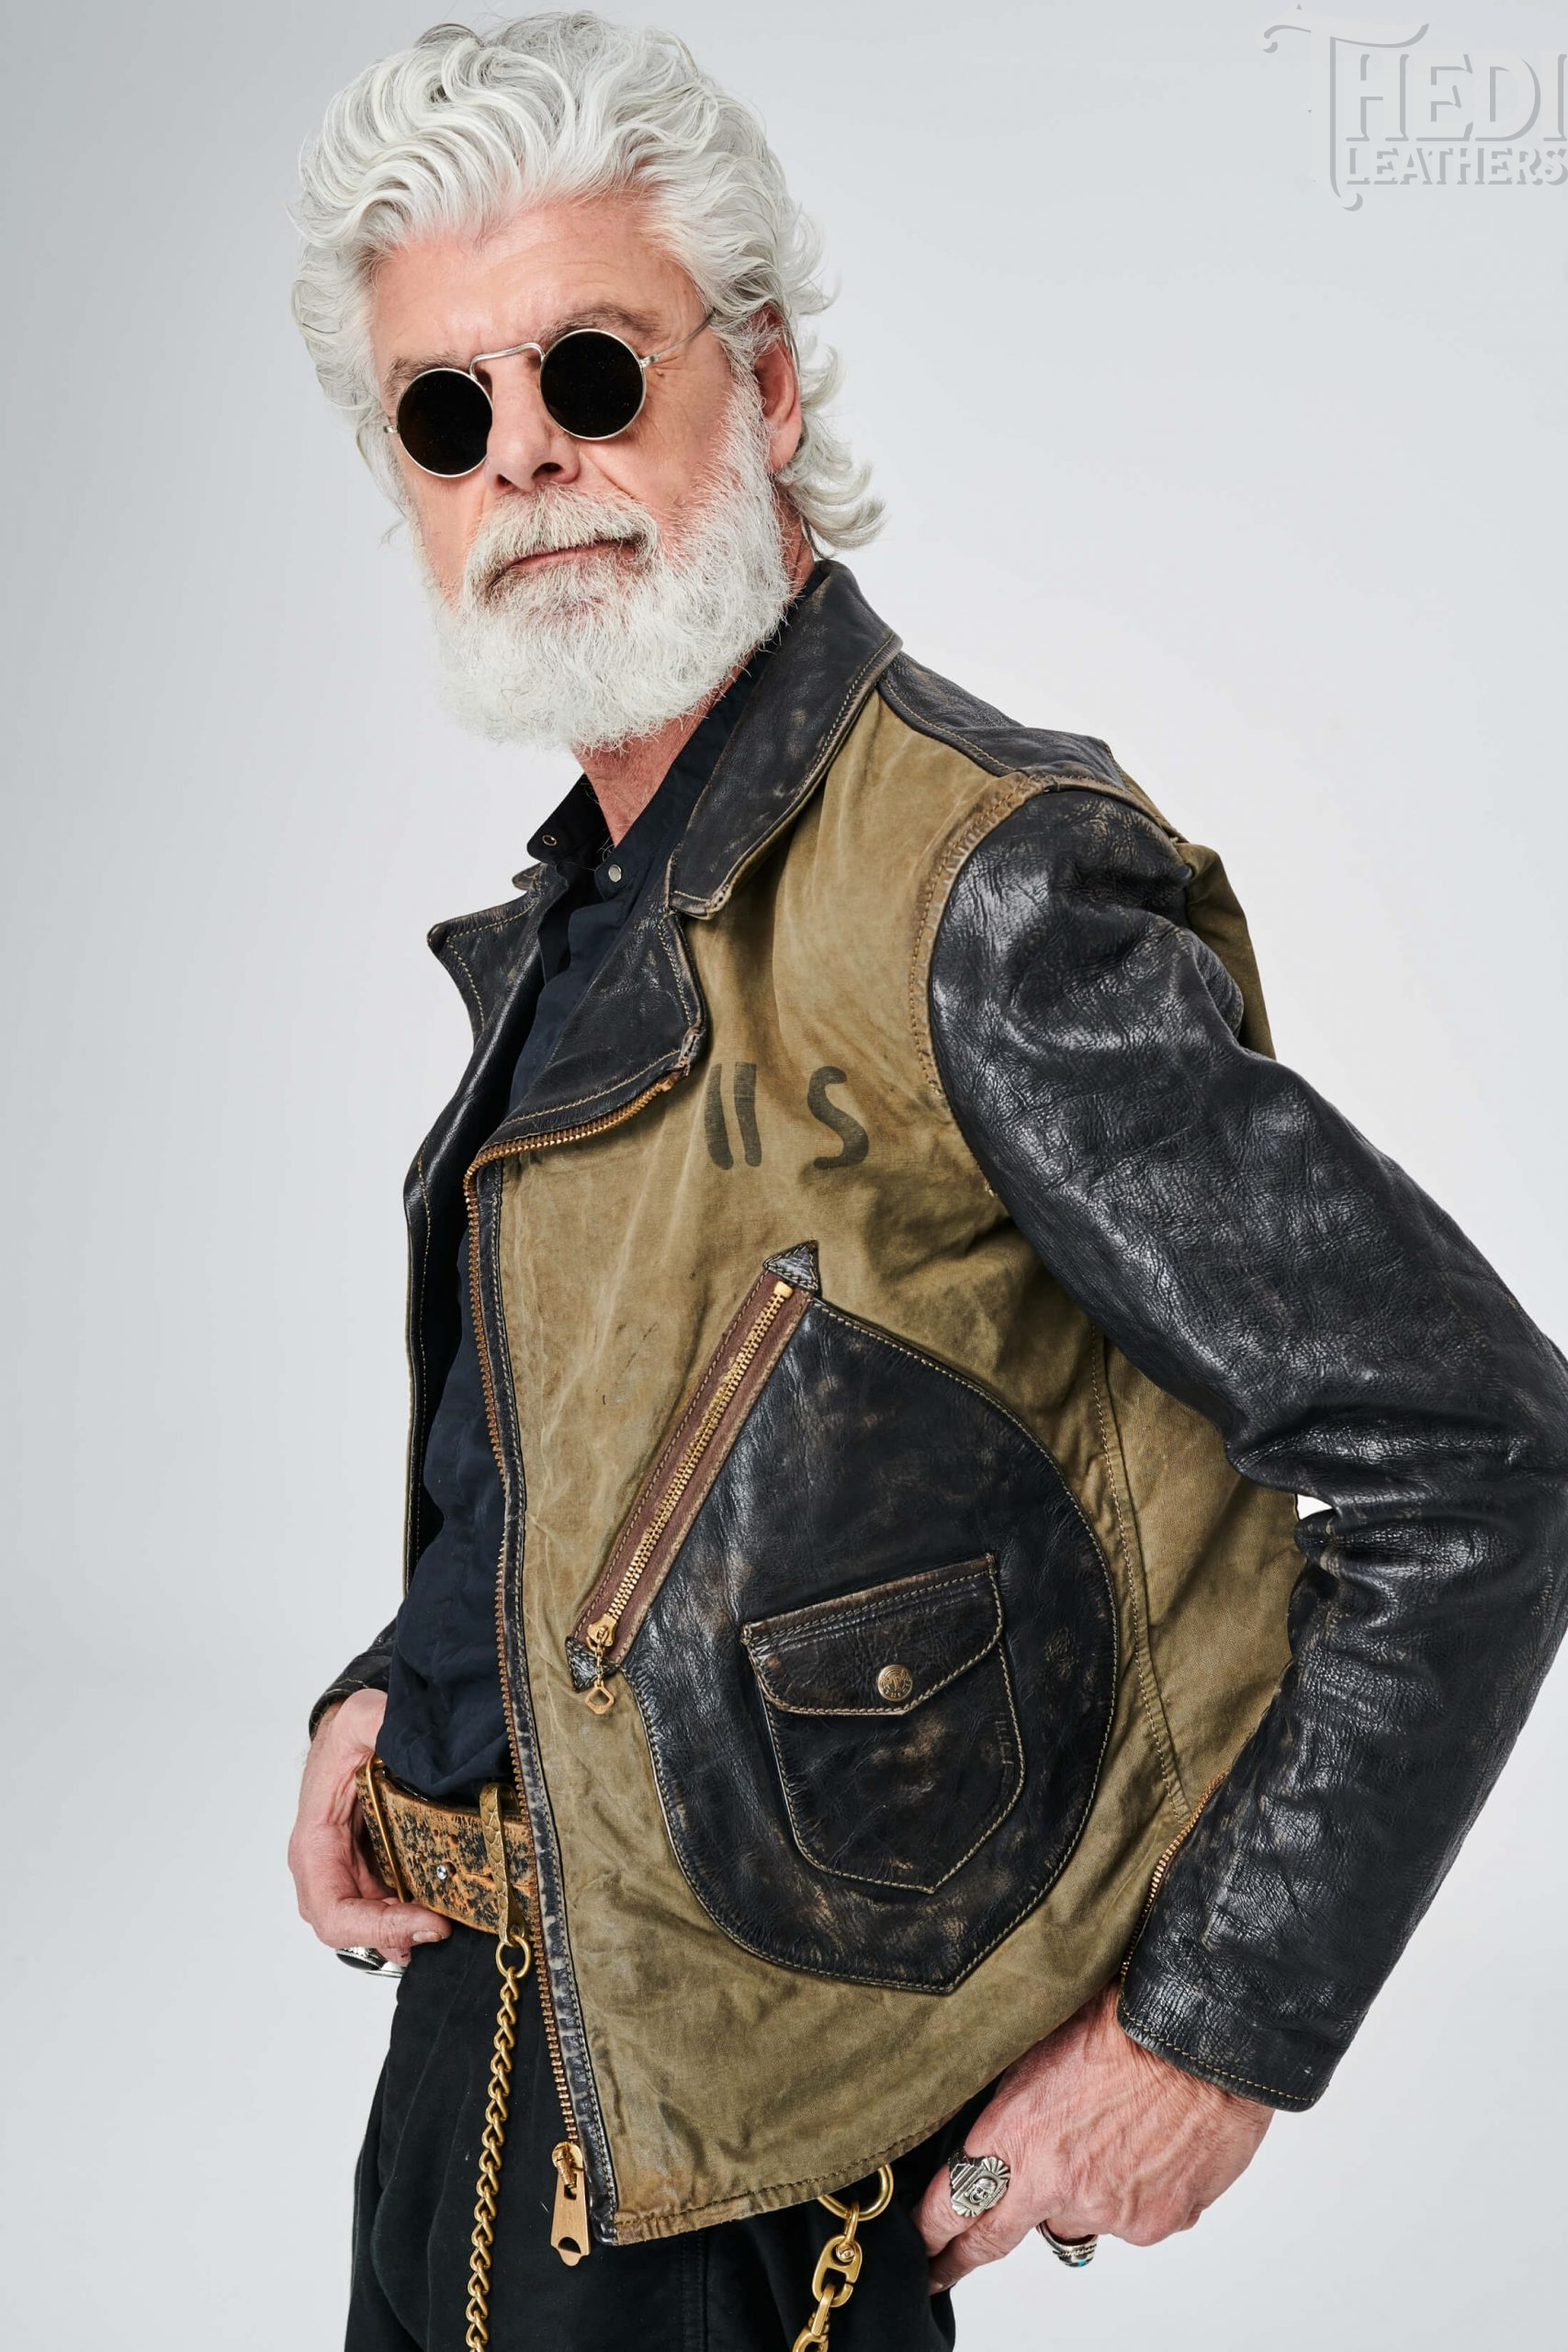 https://thedi-leathers.com/wp-content/uploads/2020/04/MTC-C1279405-SIDE-scaled.jpg